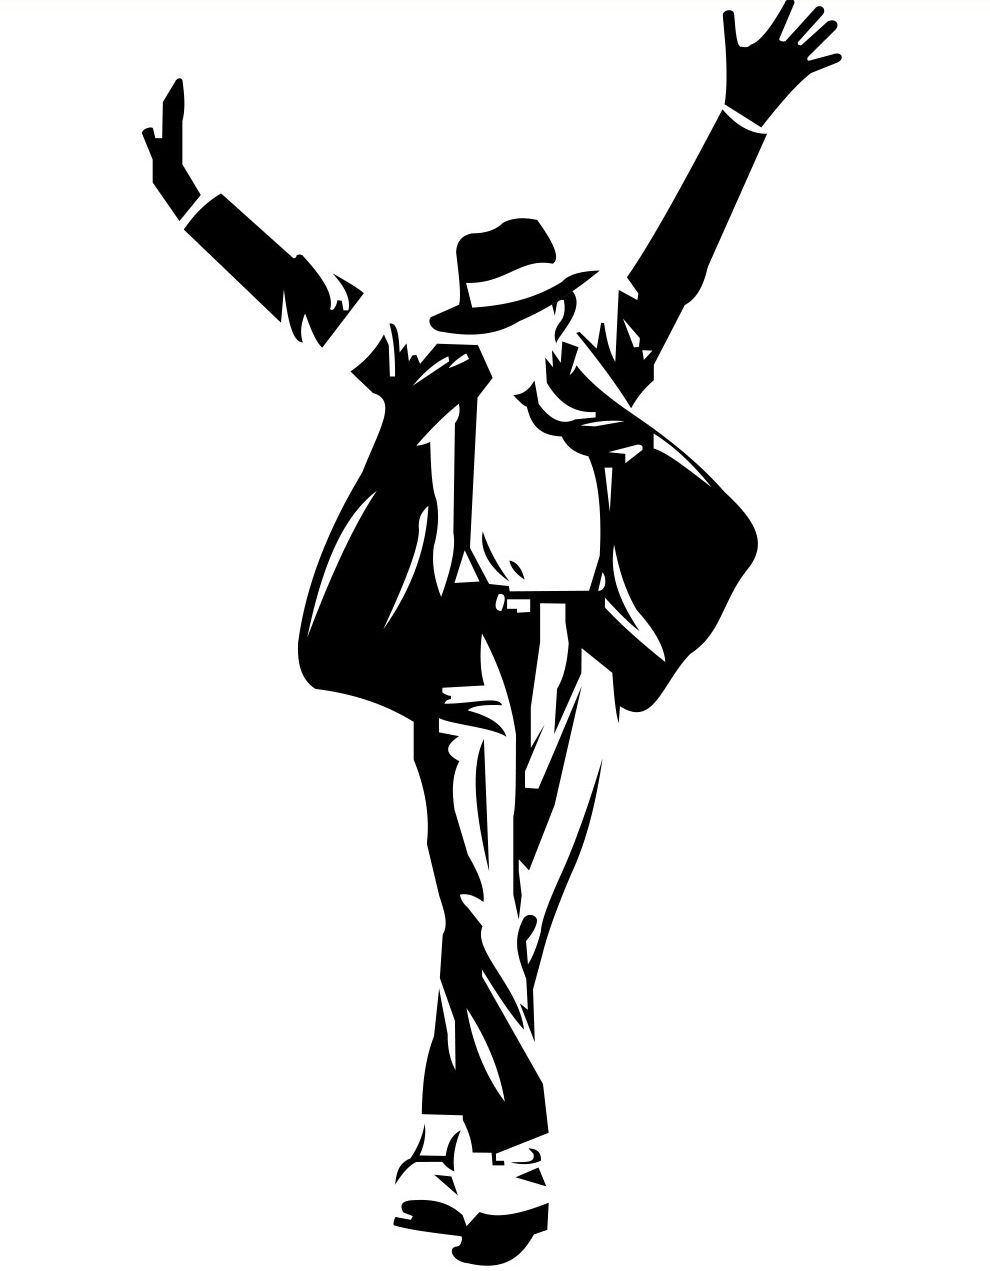 An illustration of Michael Jackson in one of his famous poses.